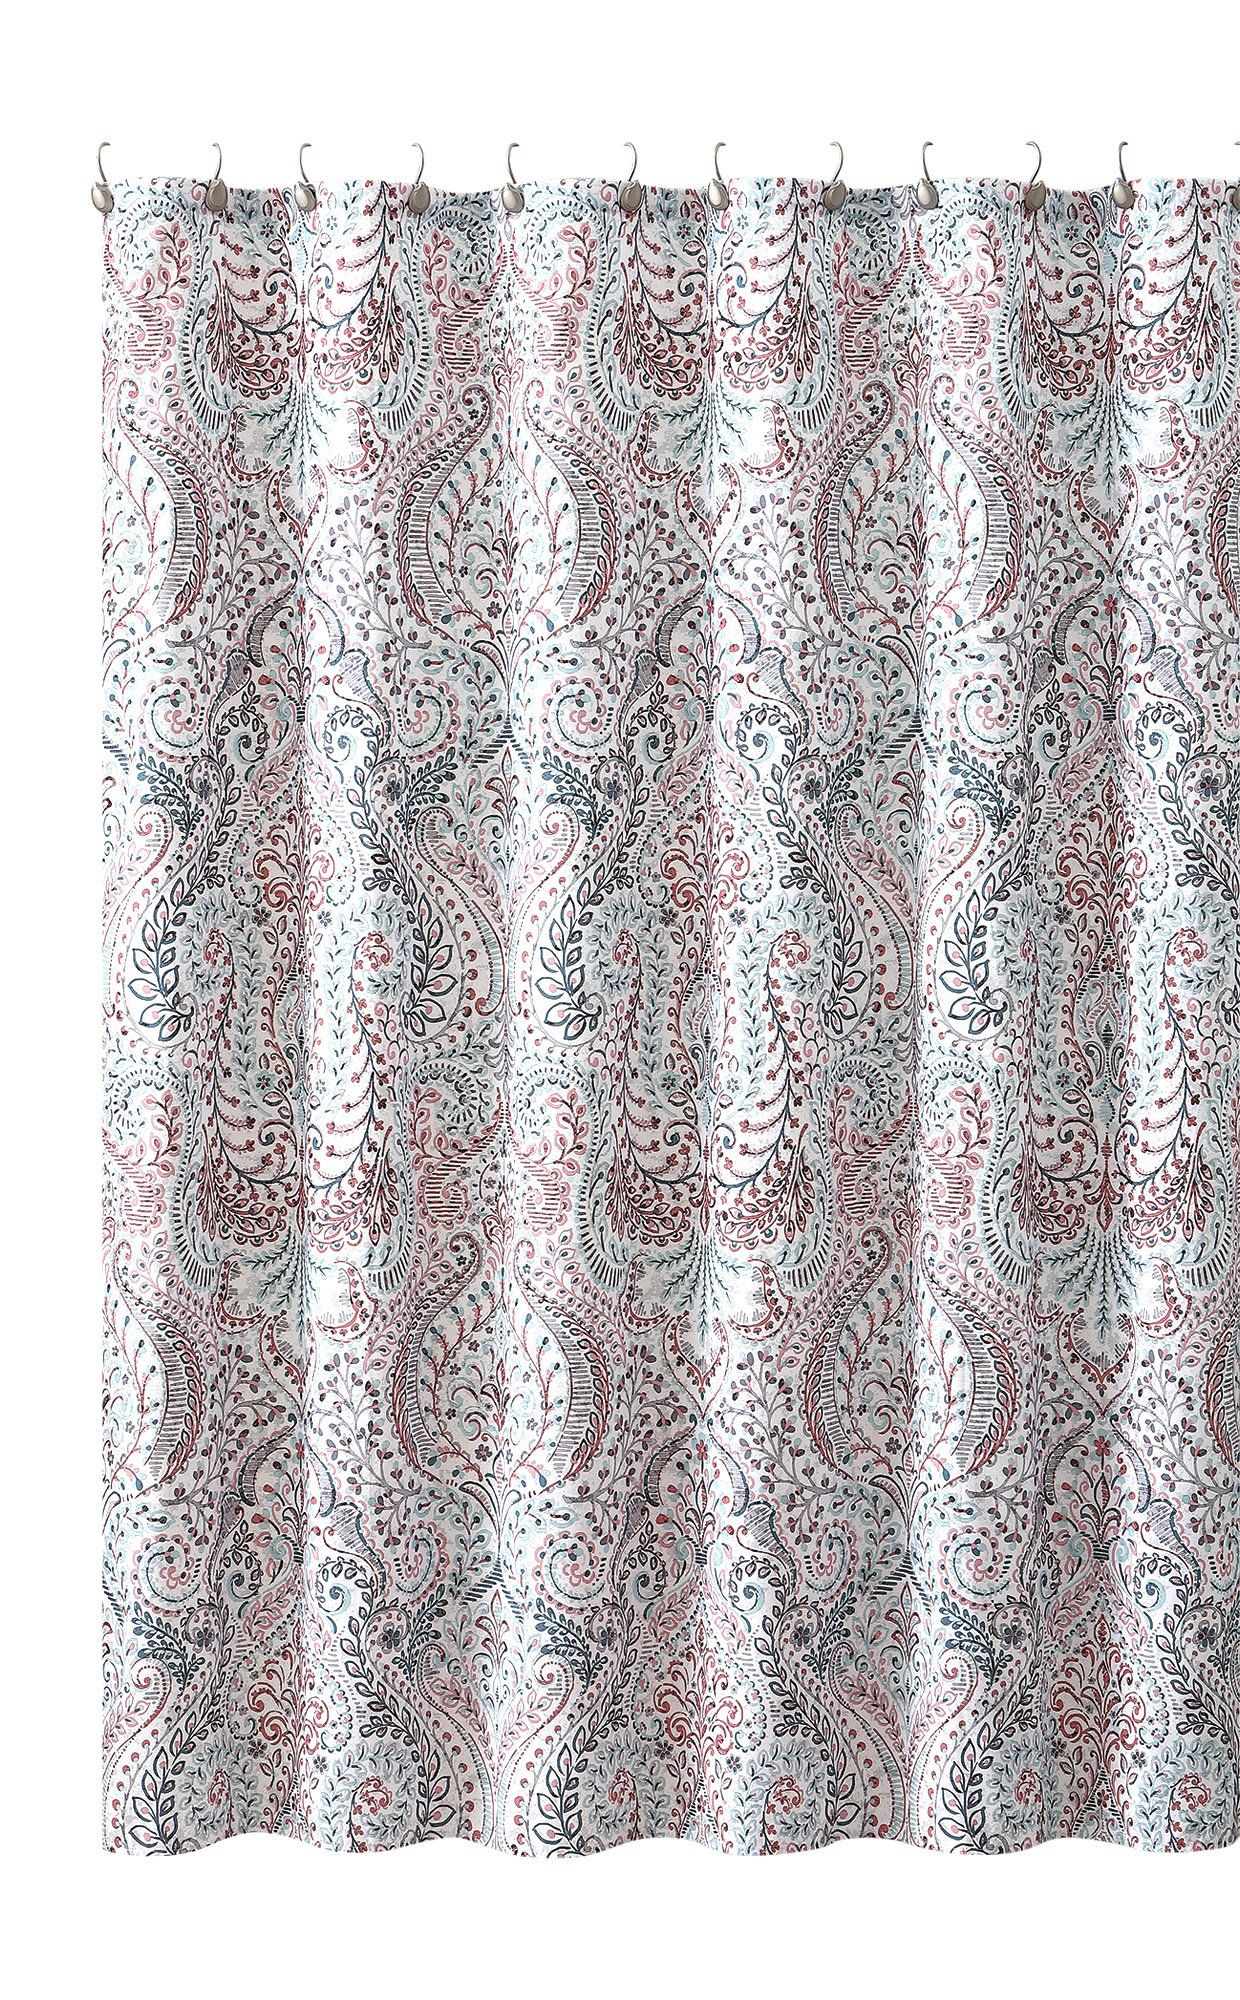 Floral Paisley Turquoise Pink Grey Fabric Shower Curtain Vintage